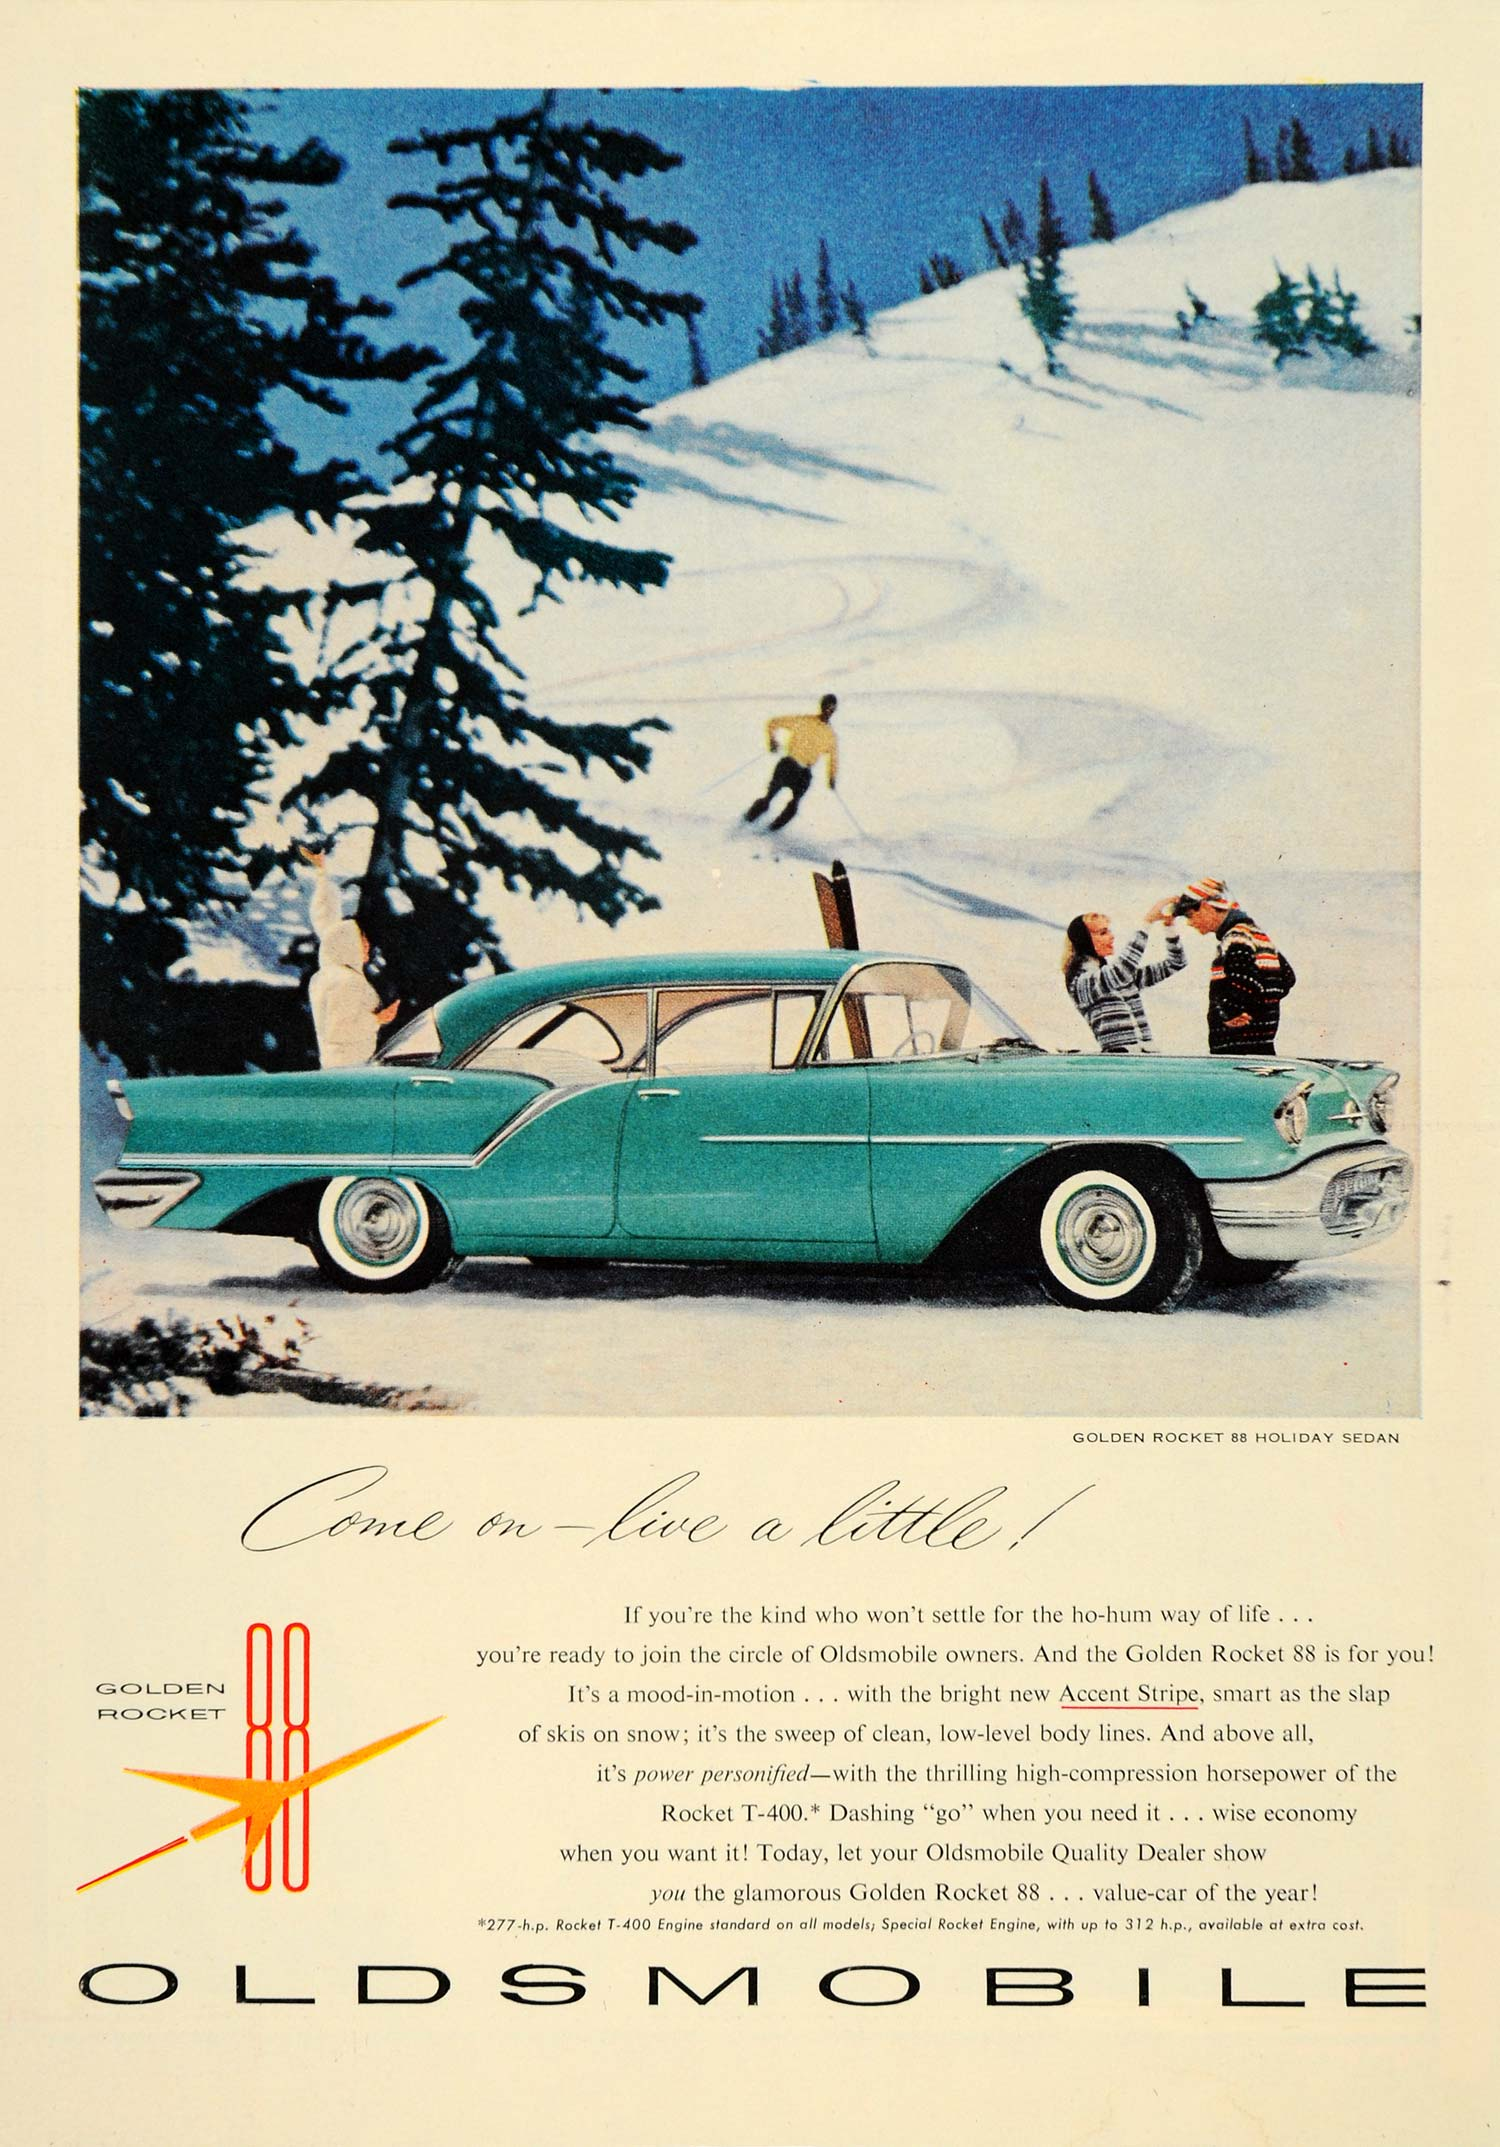 1957 Ad Oldsmobile Golden Rocket 88 Holiday Sedan Fins - ORIGINAL TM3